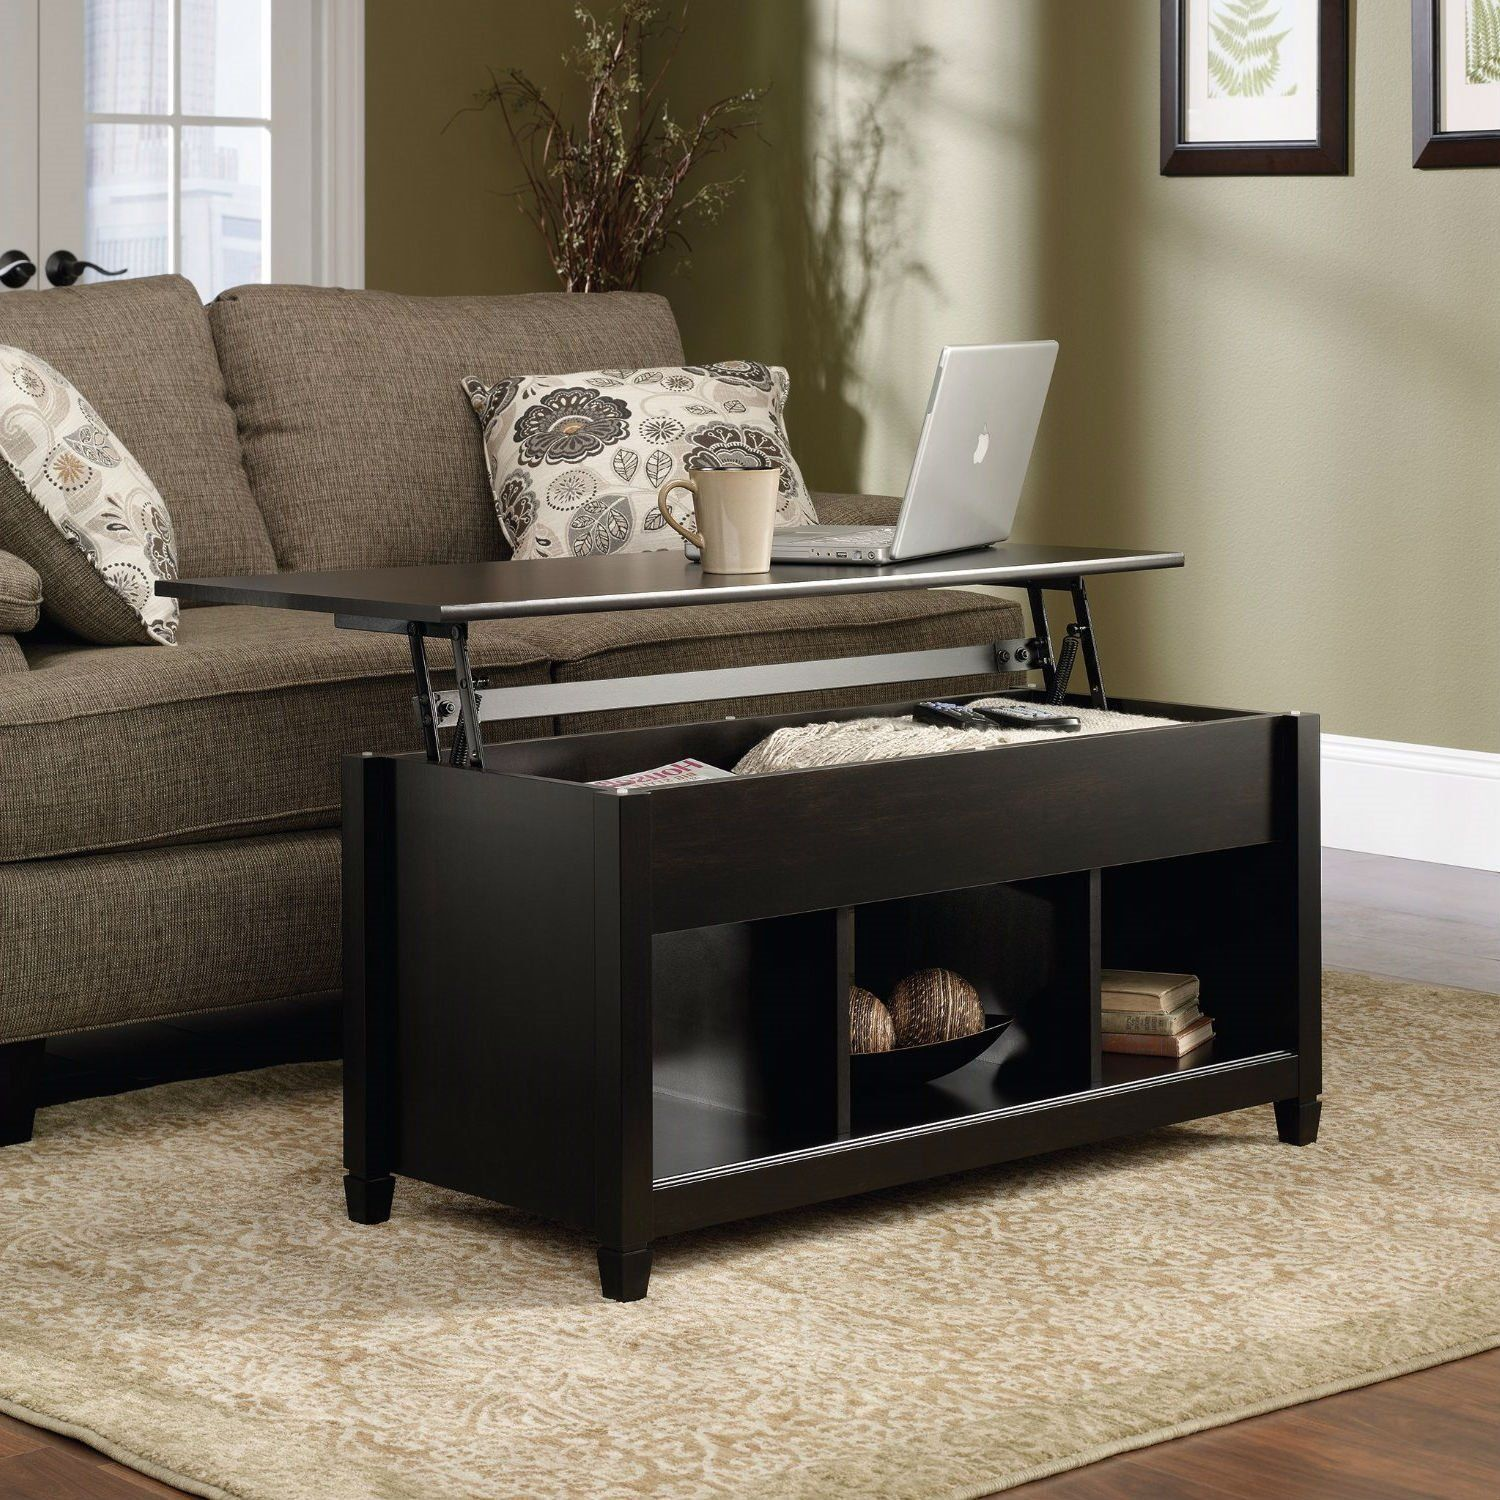 This Black Wood Finish Lift Top Coffee Table With Bottom Storage Space Would Be A Great Addi Black Furniture Living Room Coffee Table With Storage Coffee Table